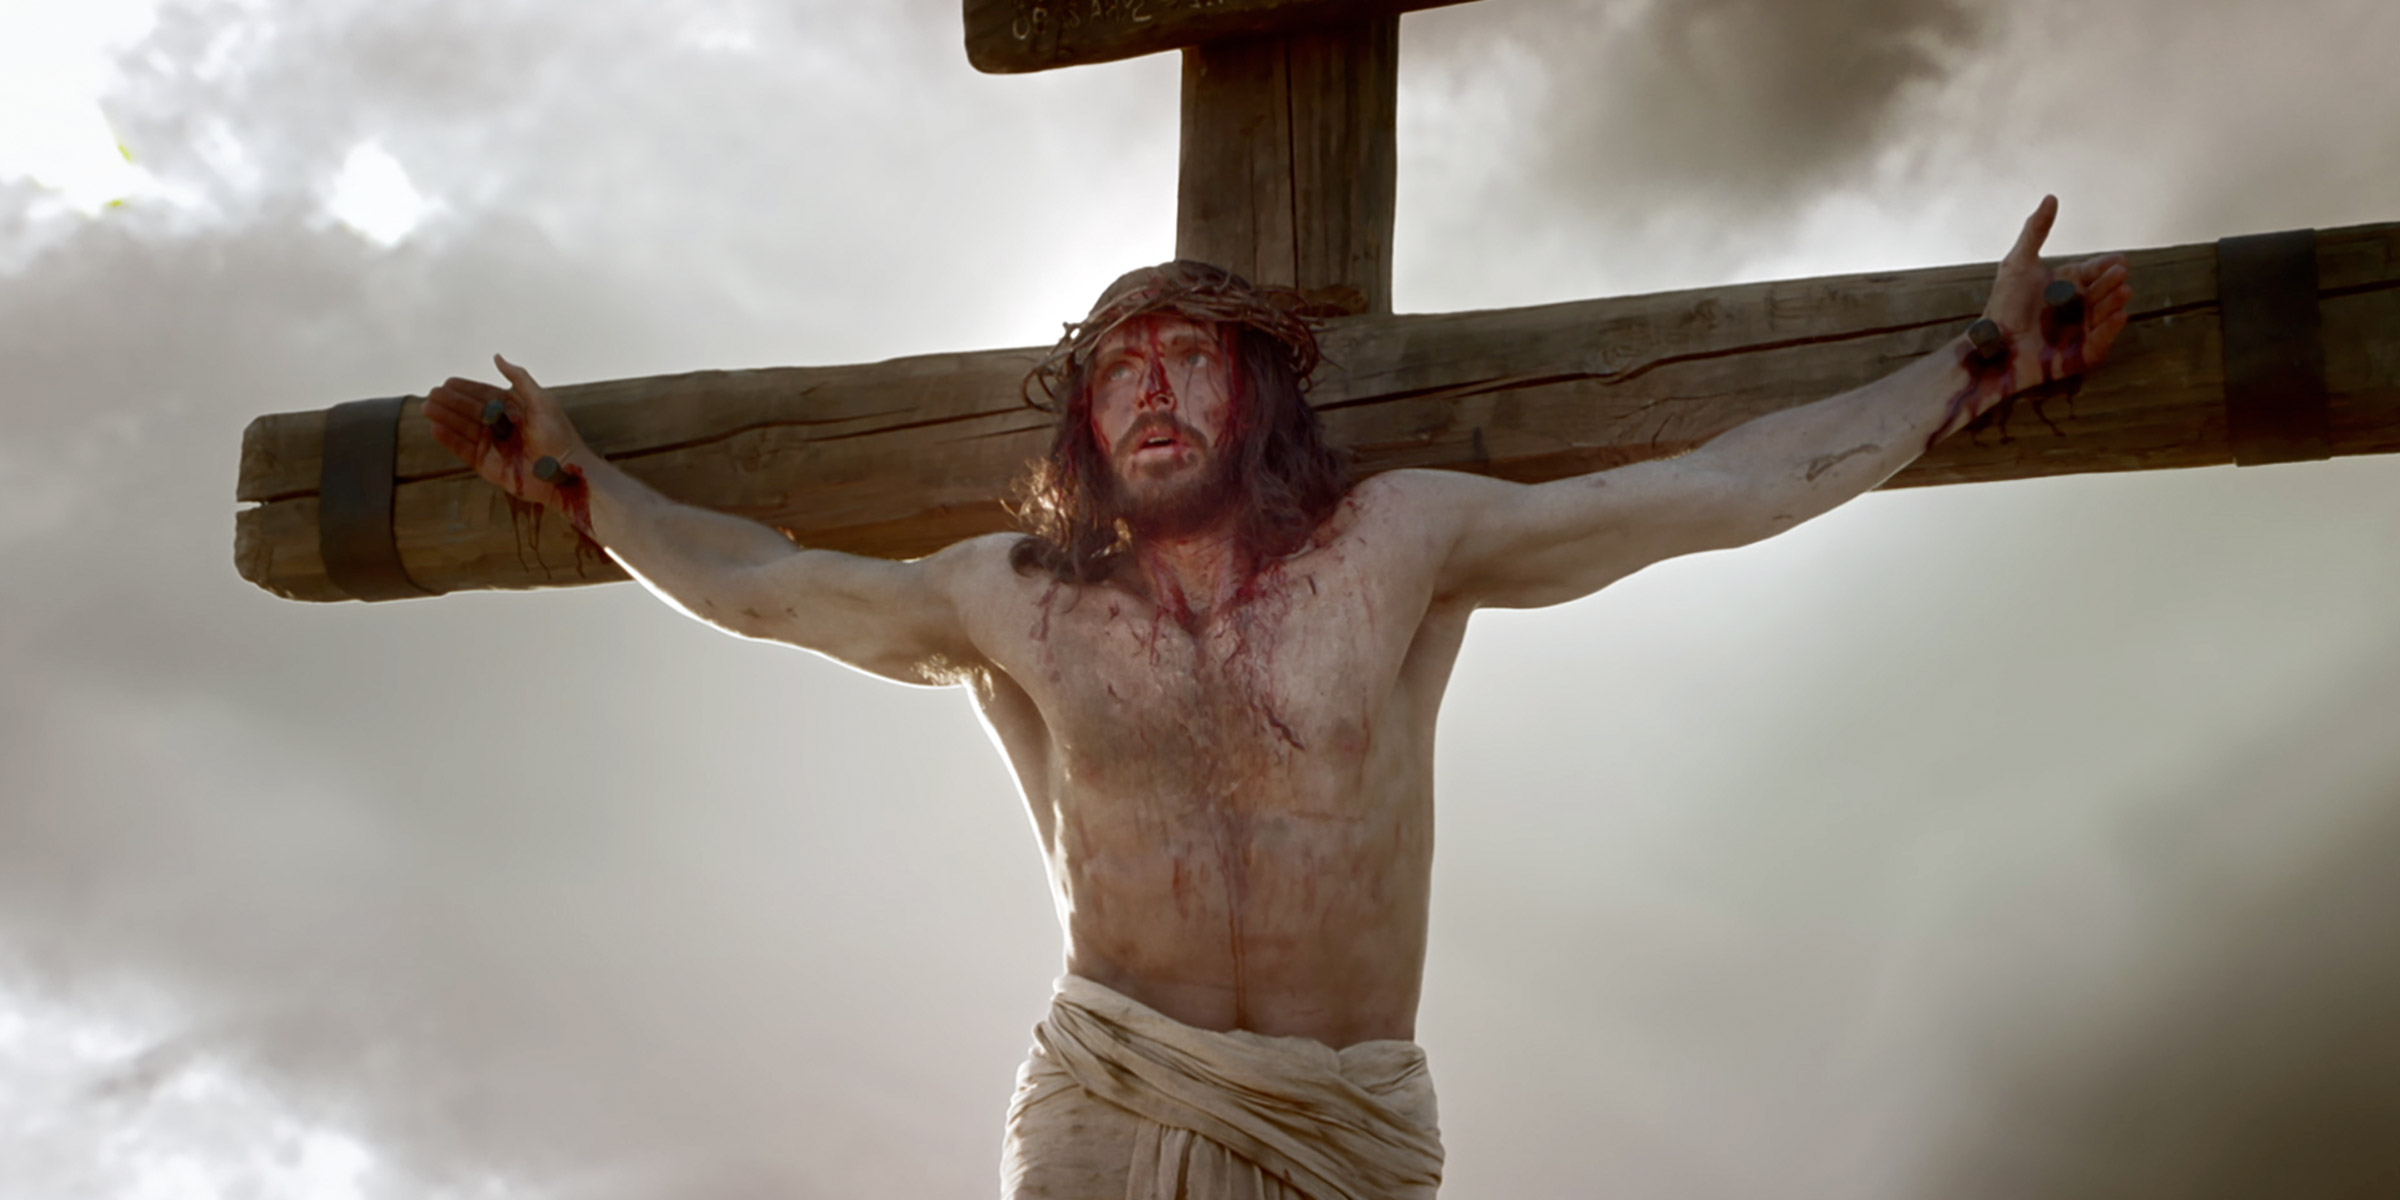 jesus is scourged and crucified